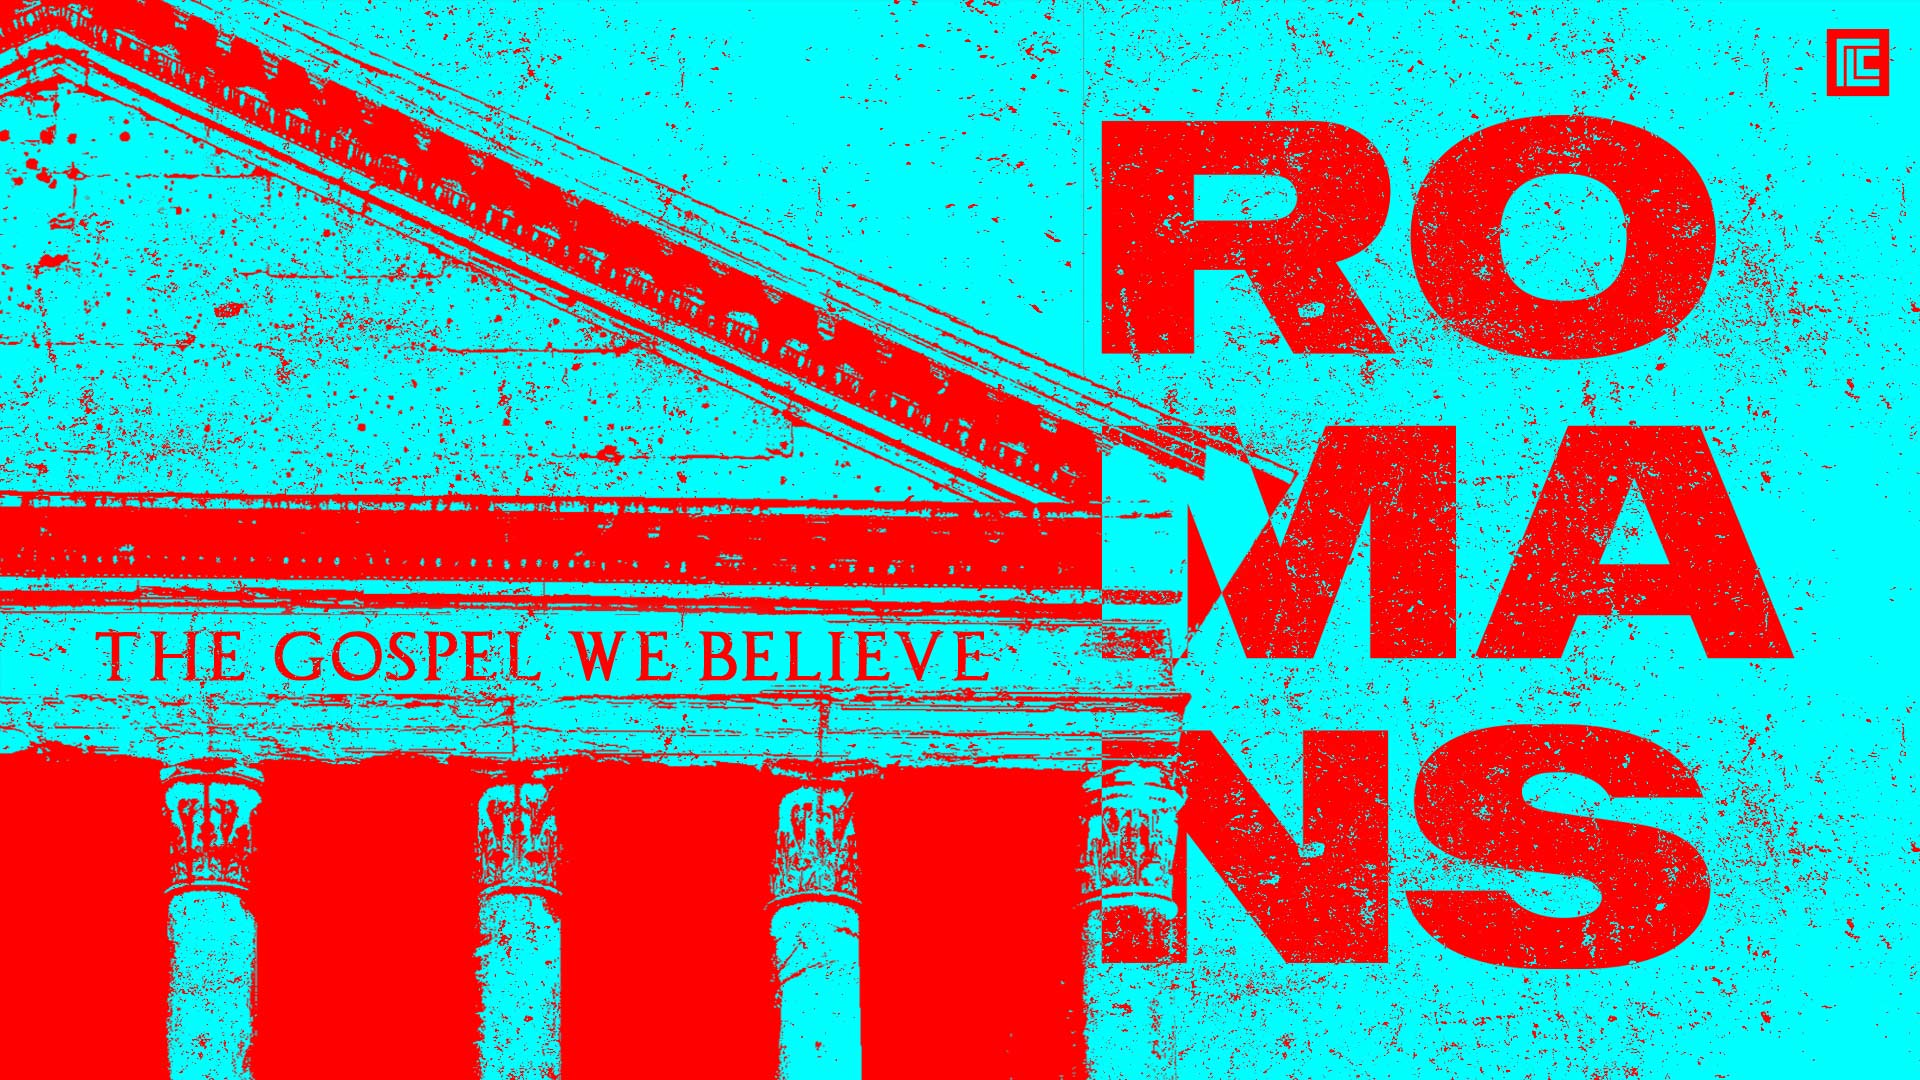 Romans: The Gospel We Believe